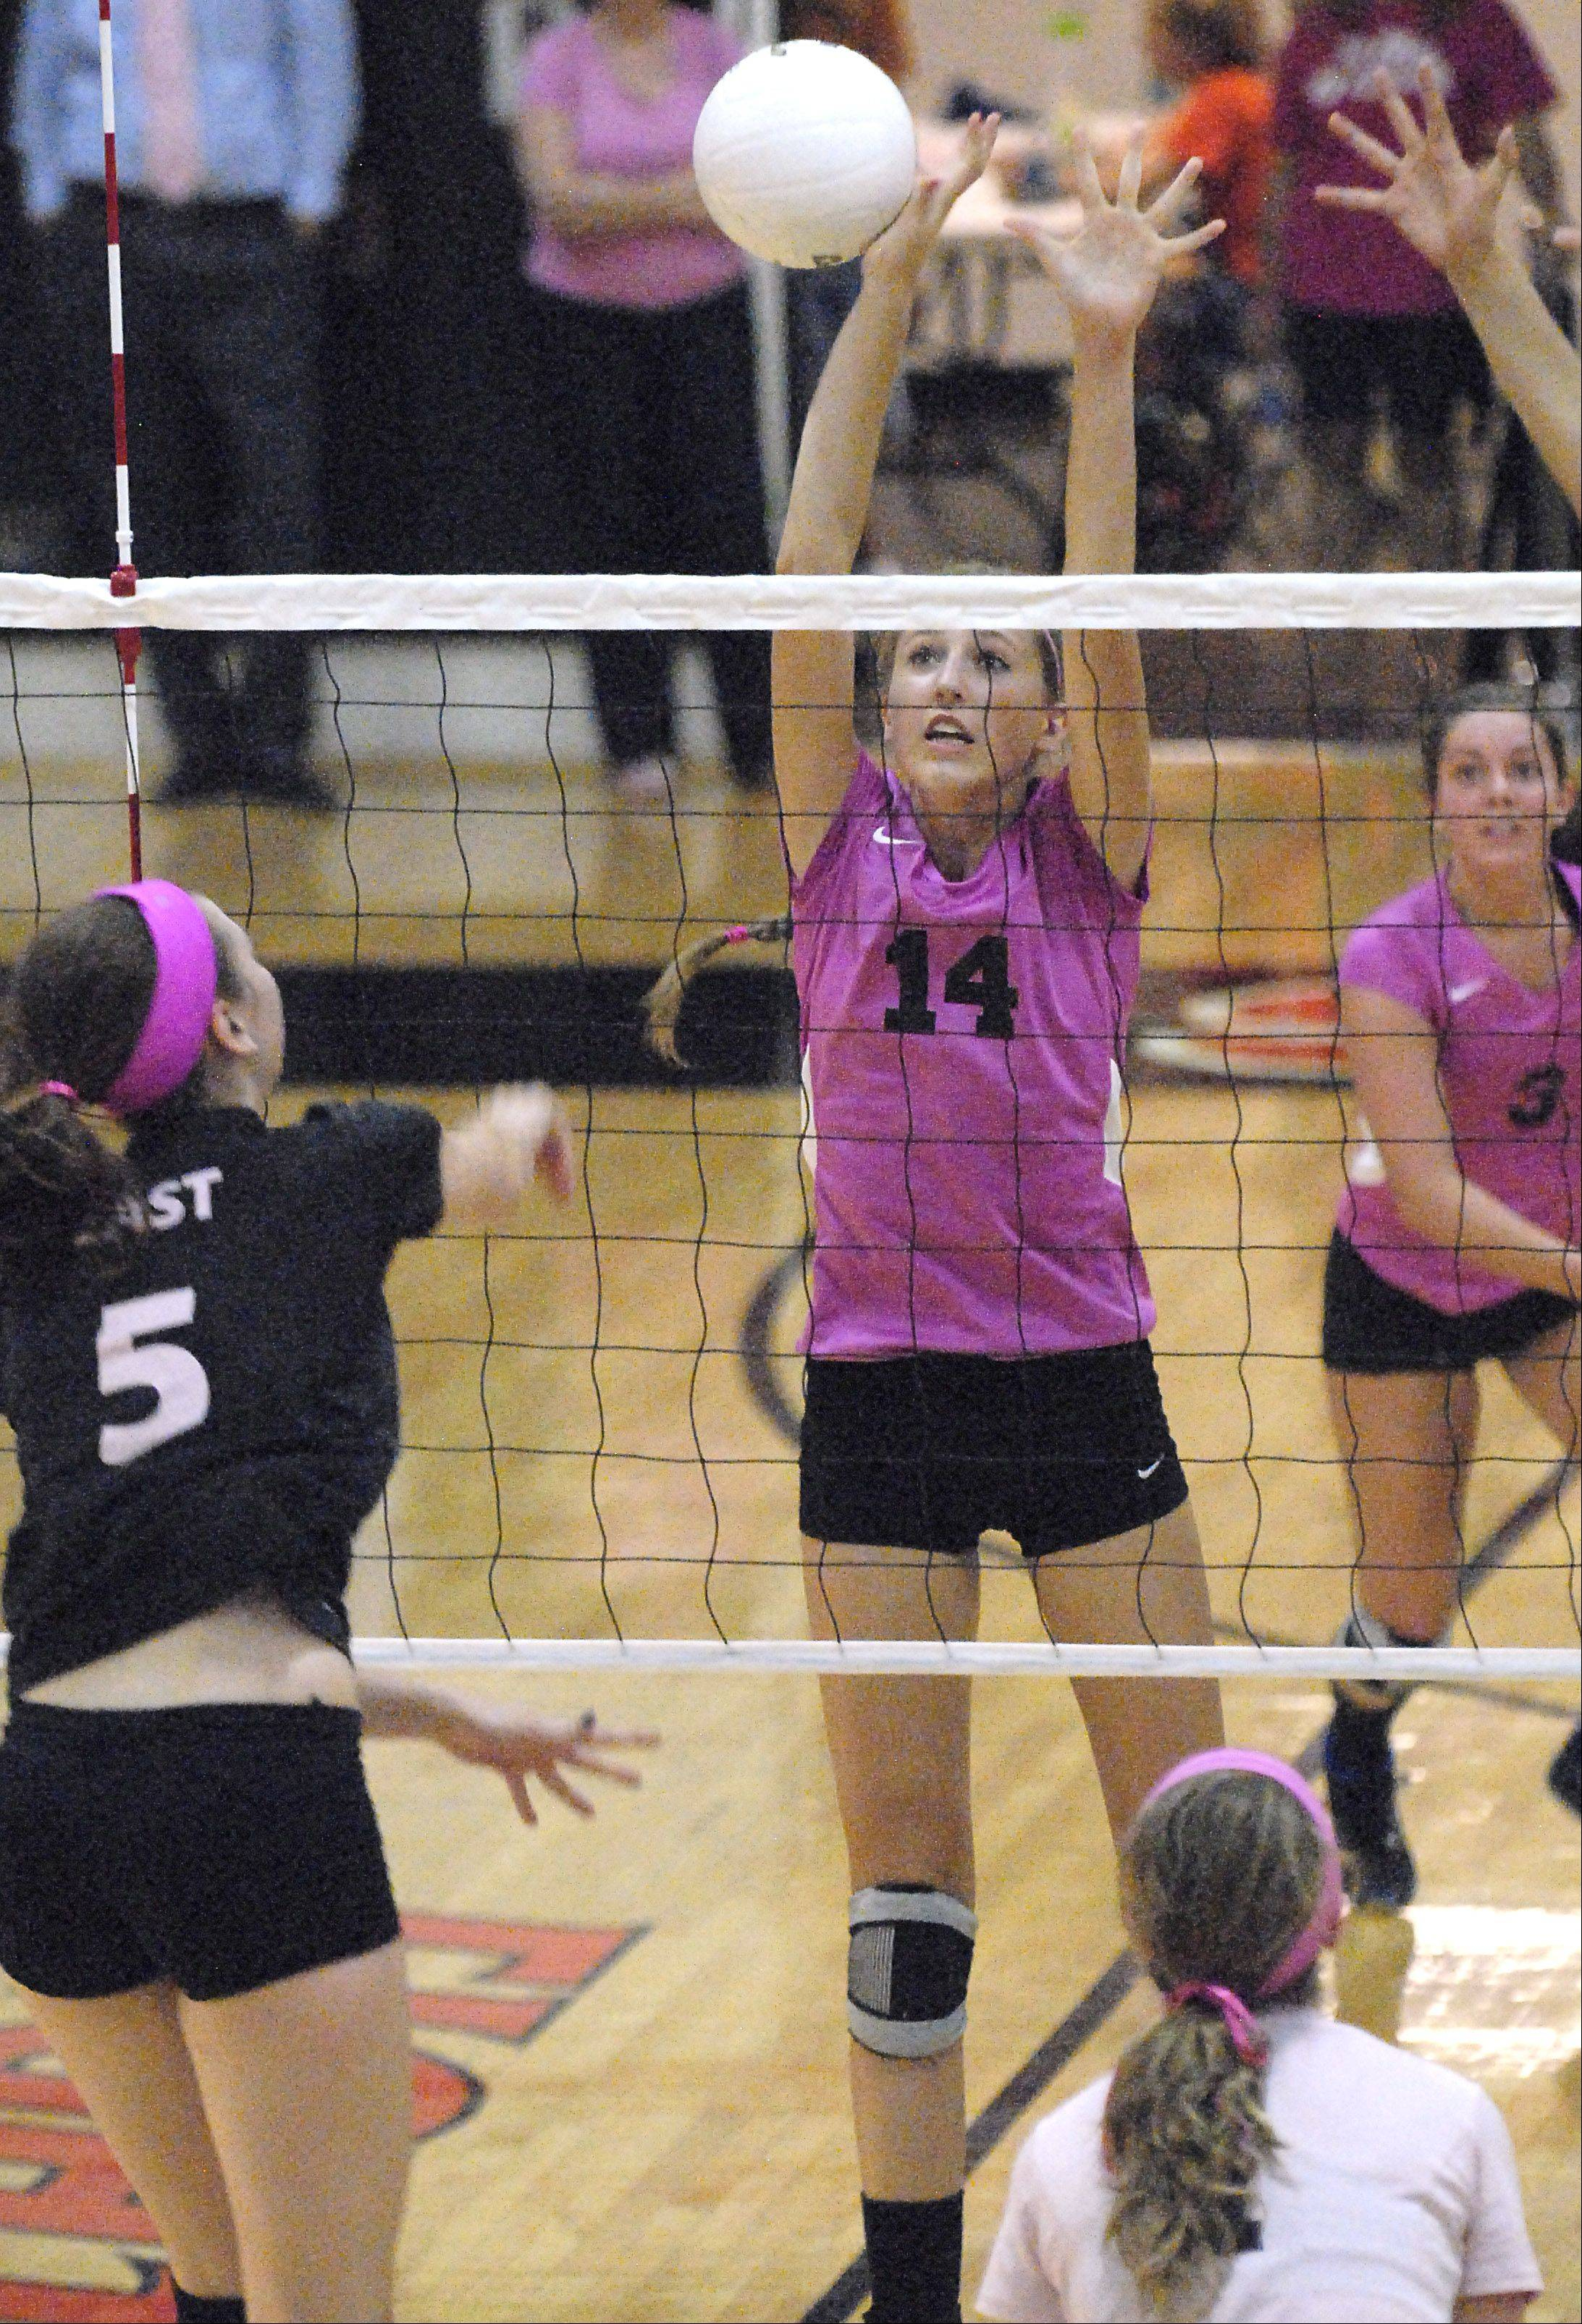 St. Charles North's Emily Carroll deflects a spike by St. Charles East's Nicole Woods in game one on Tuesday, September 11.